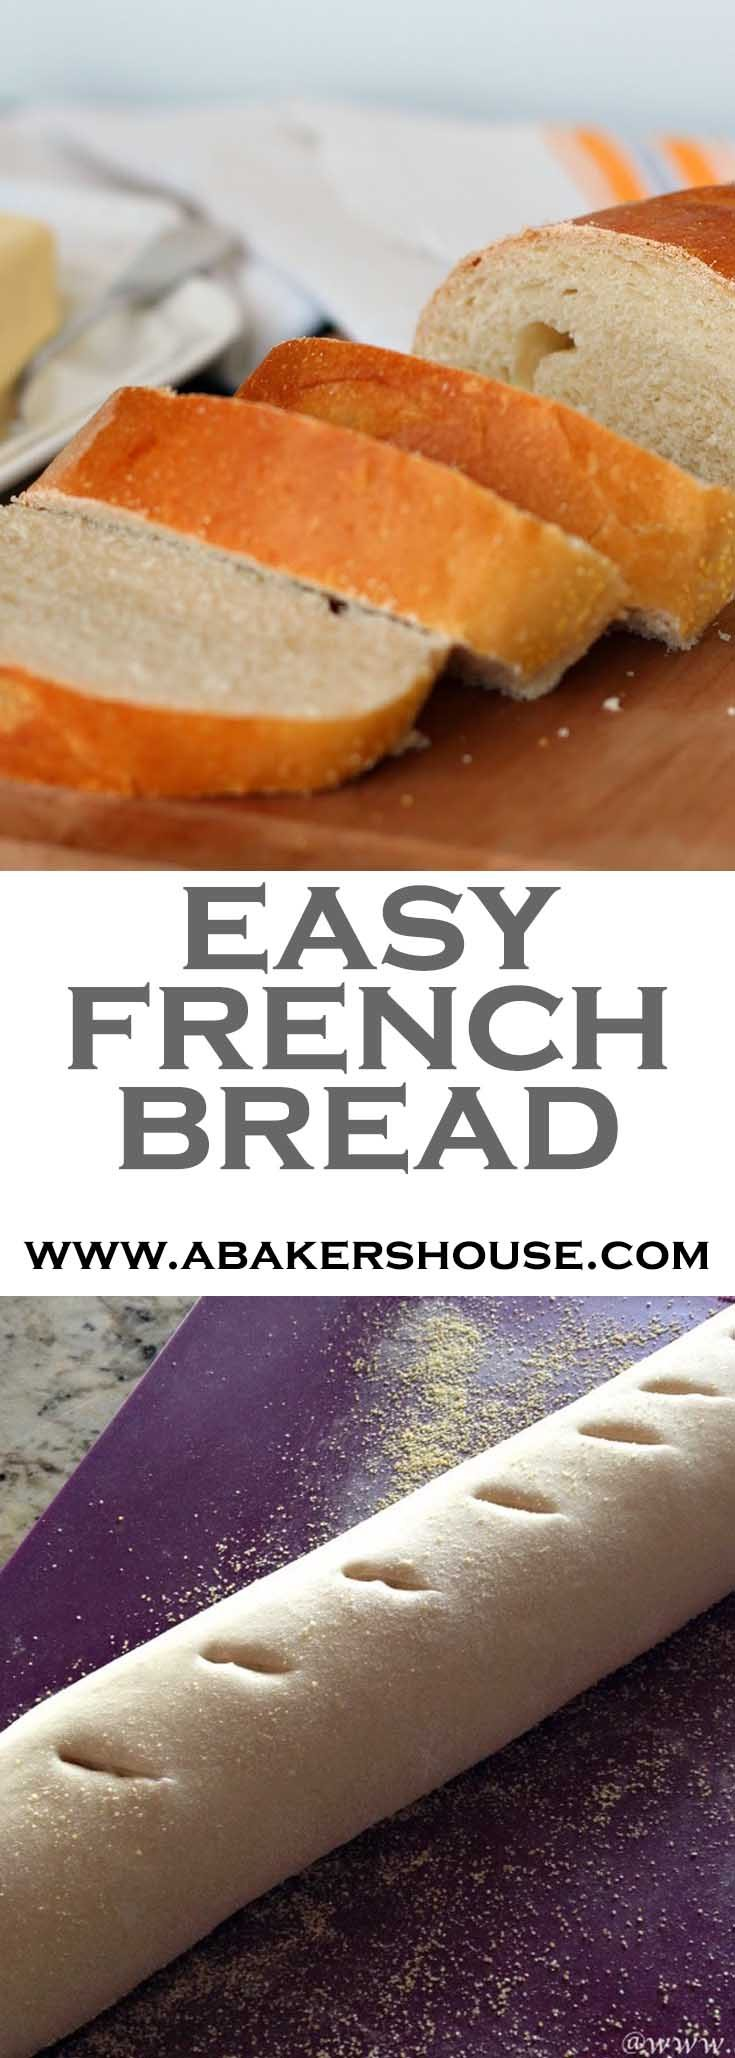 Making homemade bread doesn't have to be difficult. Follow this recipe originally from the Food Network to make two loaves of French bread at home. #abakershouse #french #frenchbread #homemadebread